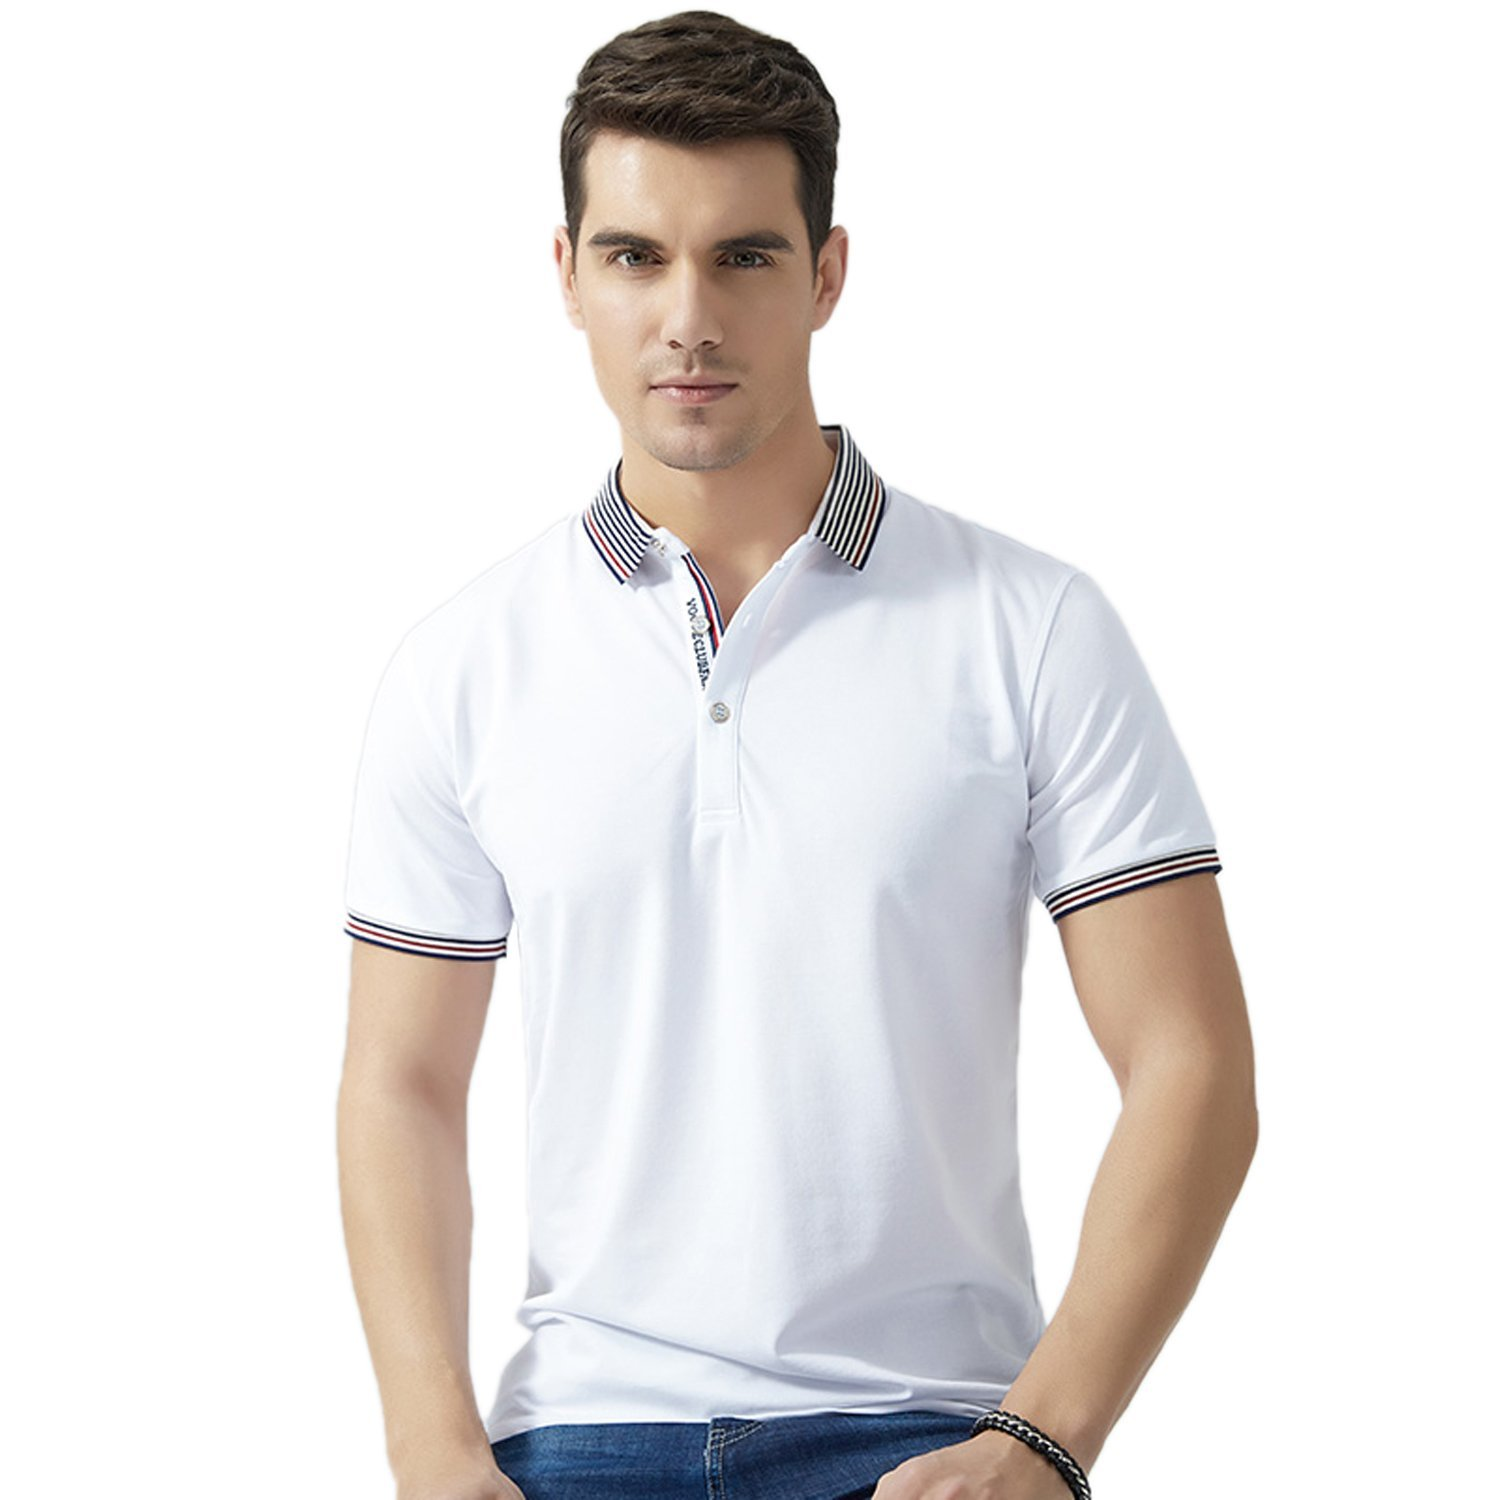 Cheap Business Polo Shirts Find Business Polo Shirts Deals On Line